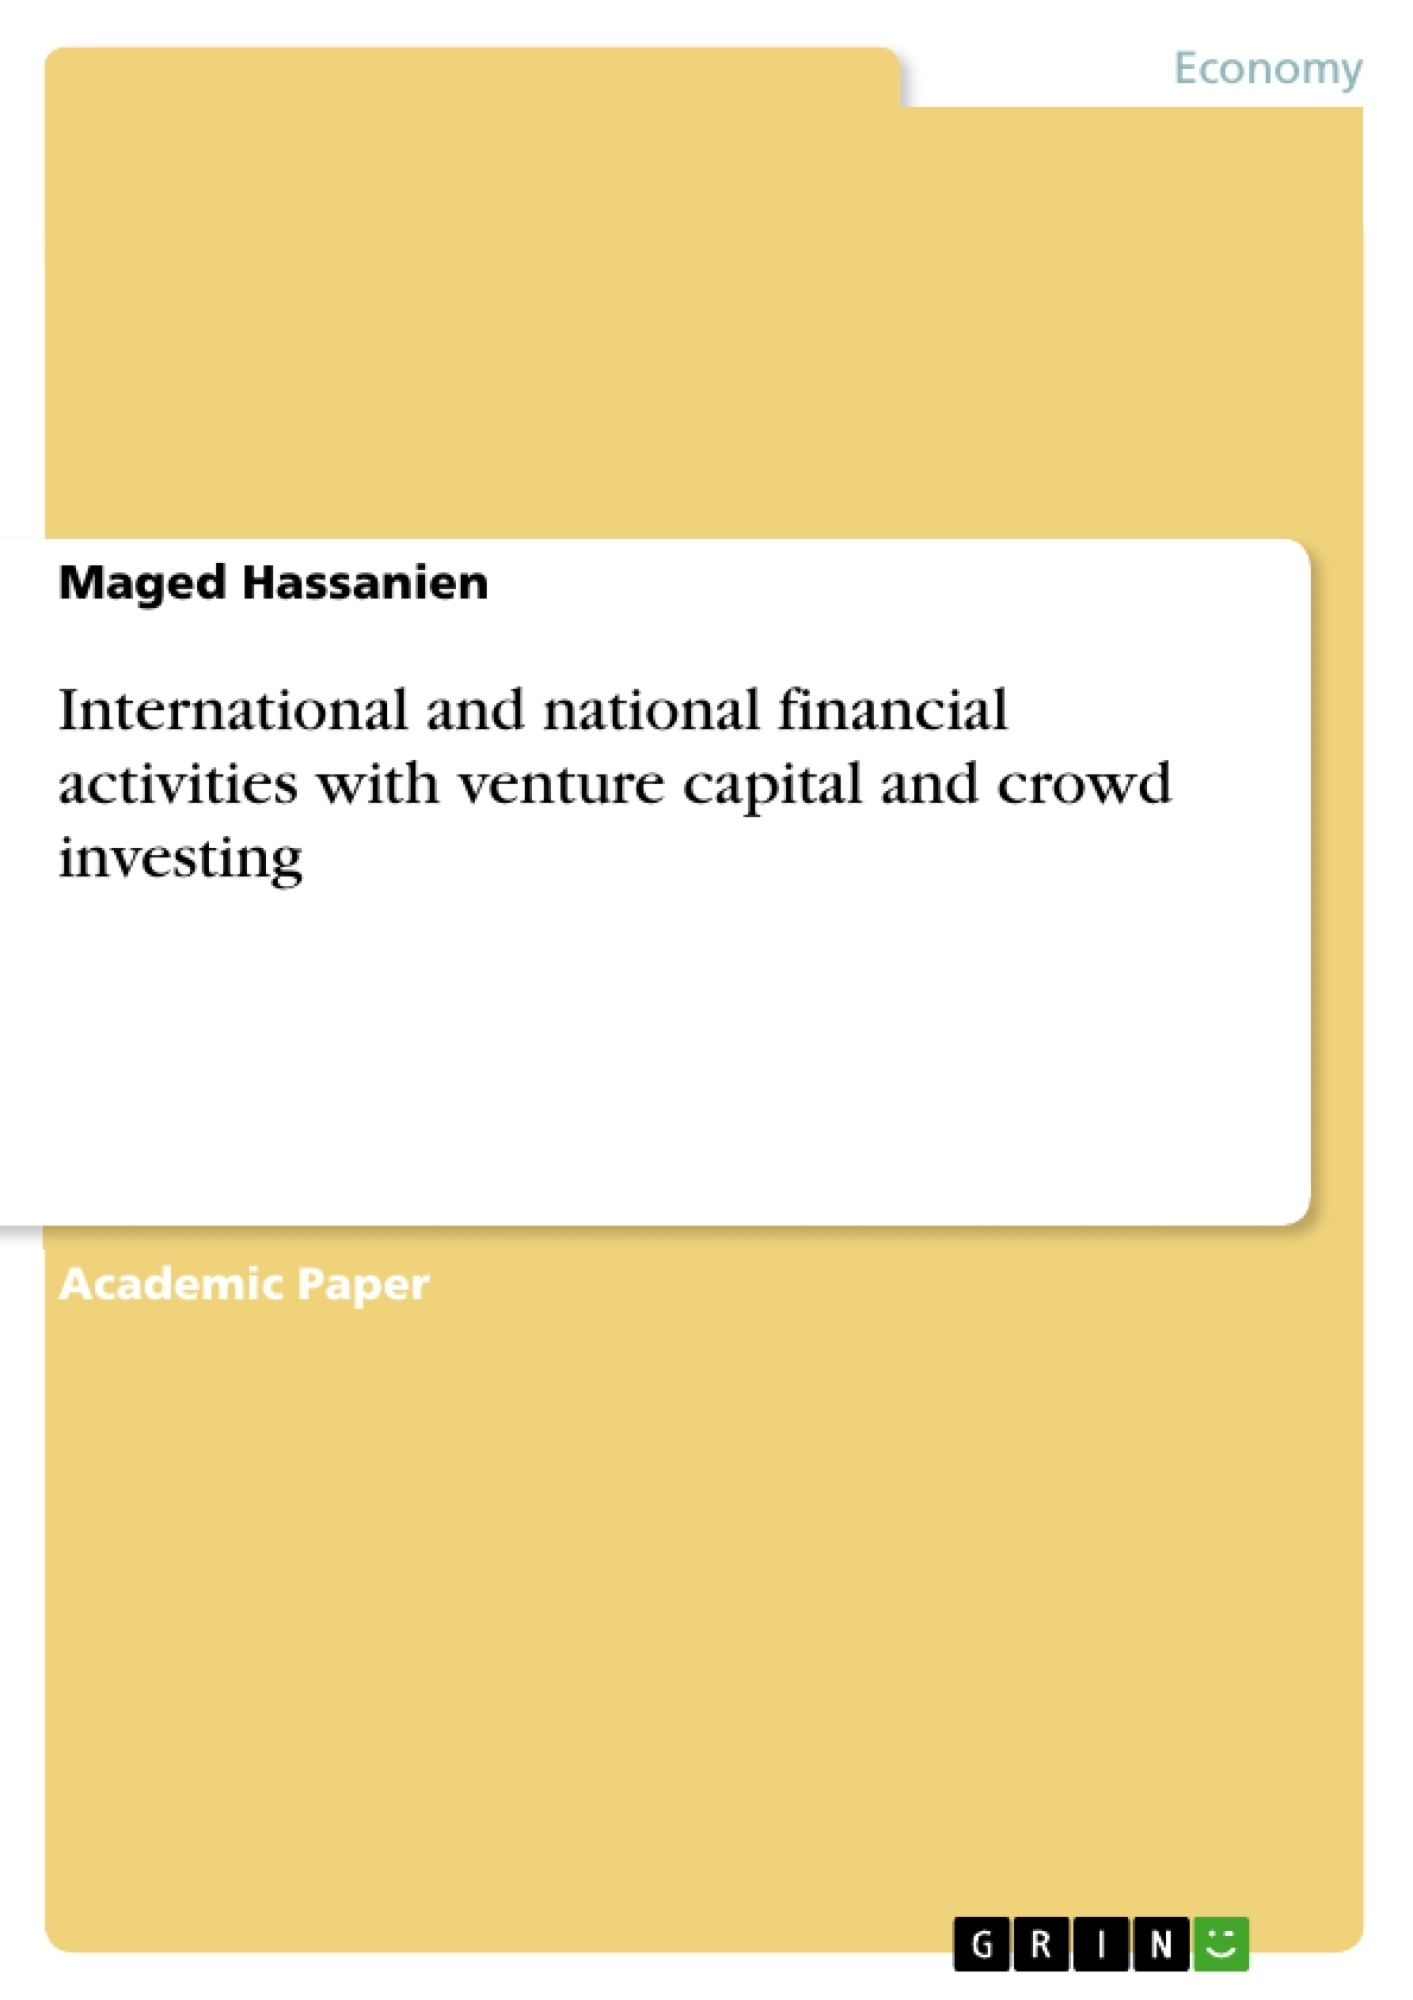 Title: International and national financial activities with venture capital and crowd investing